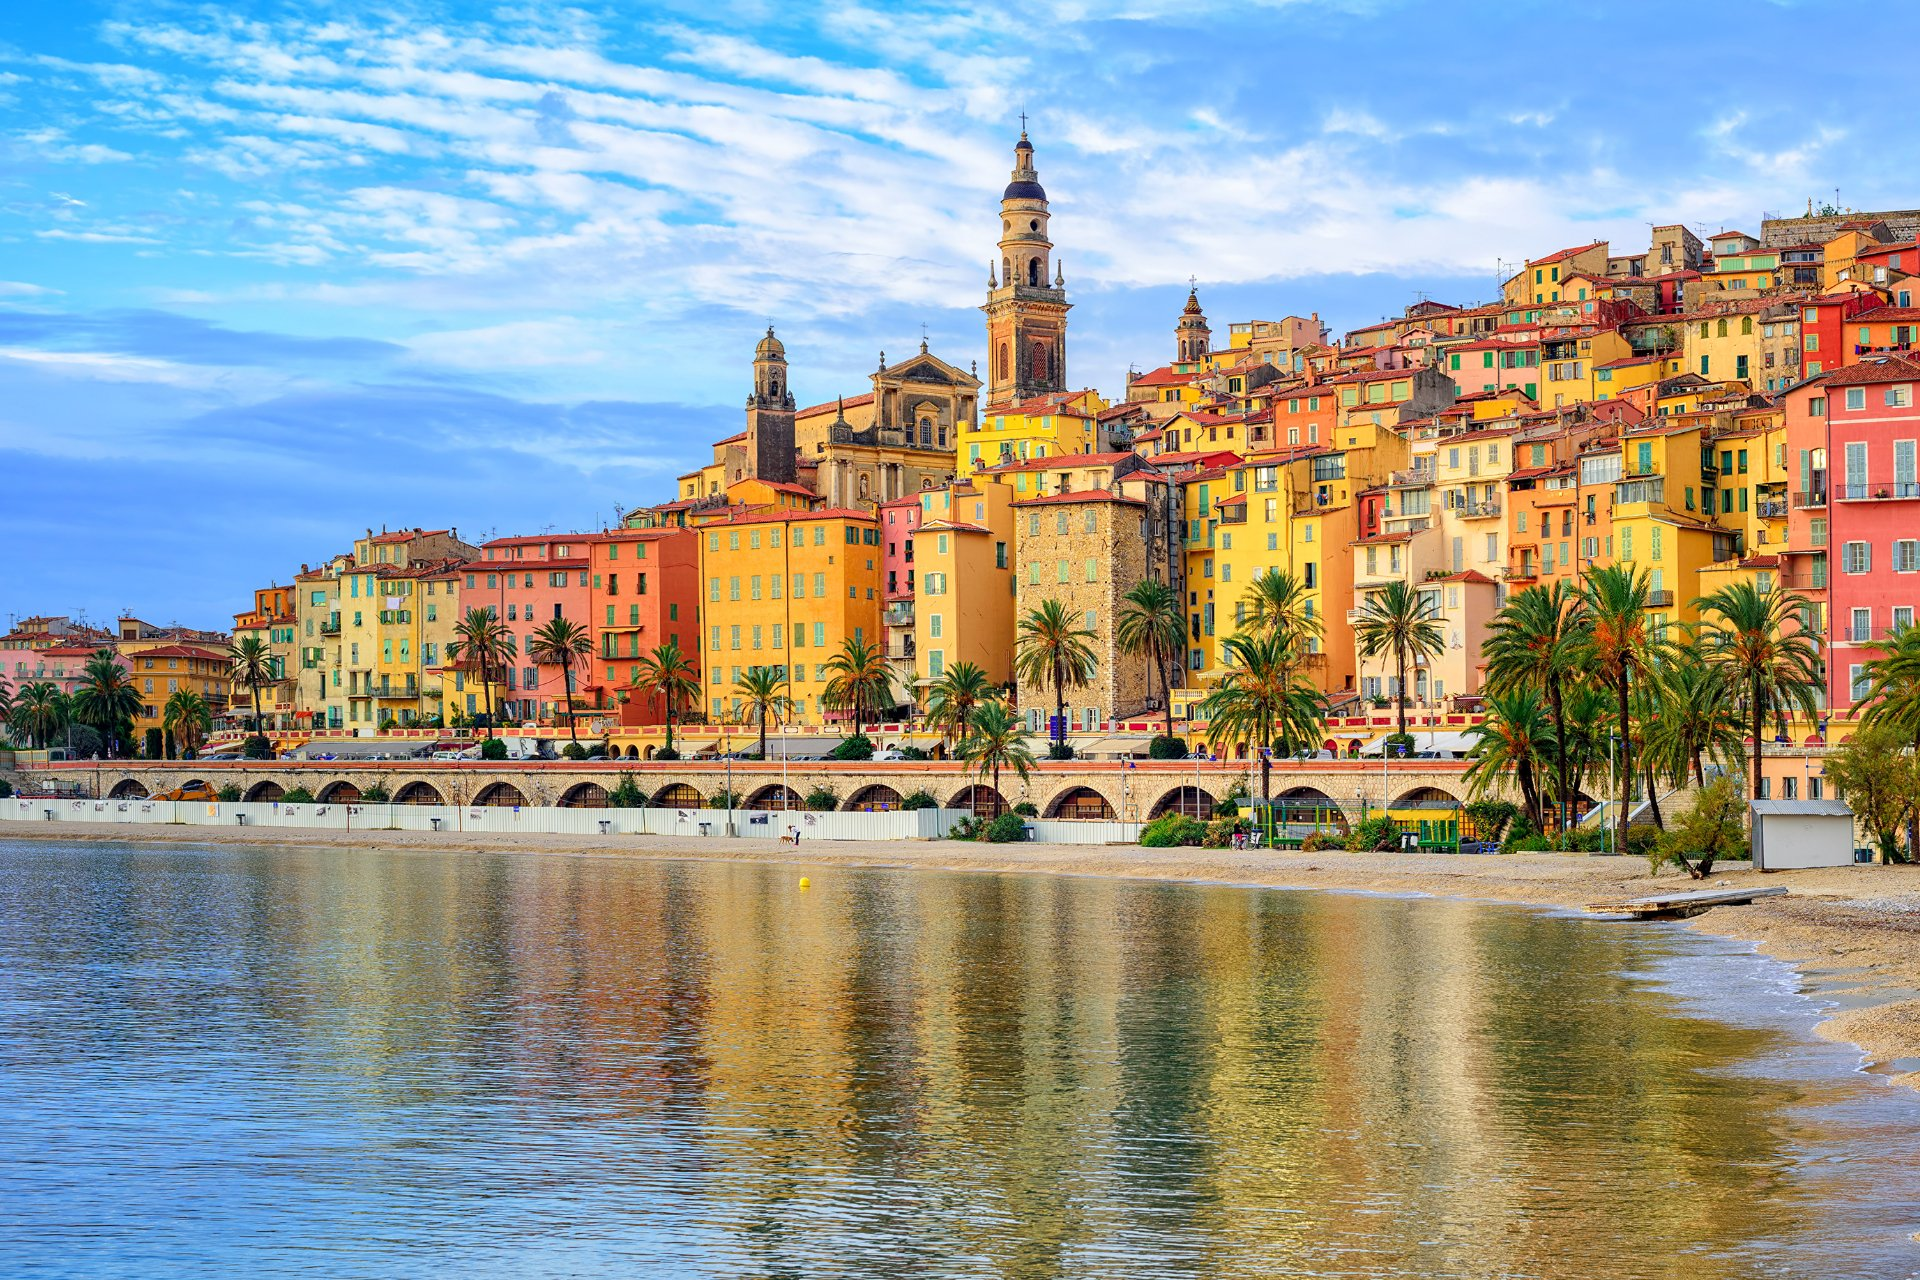 city of Menton